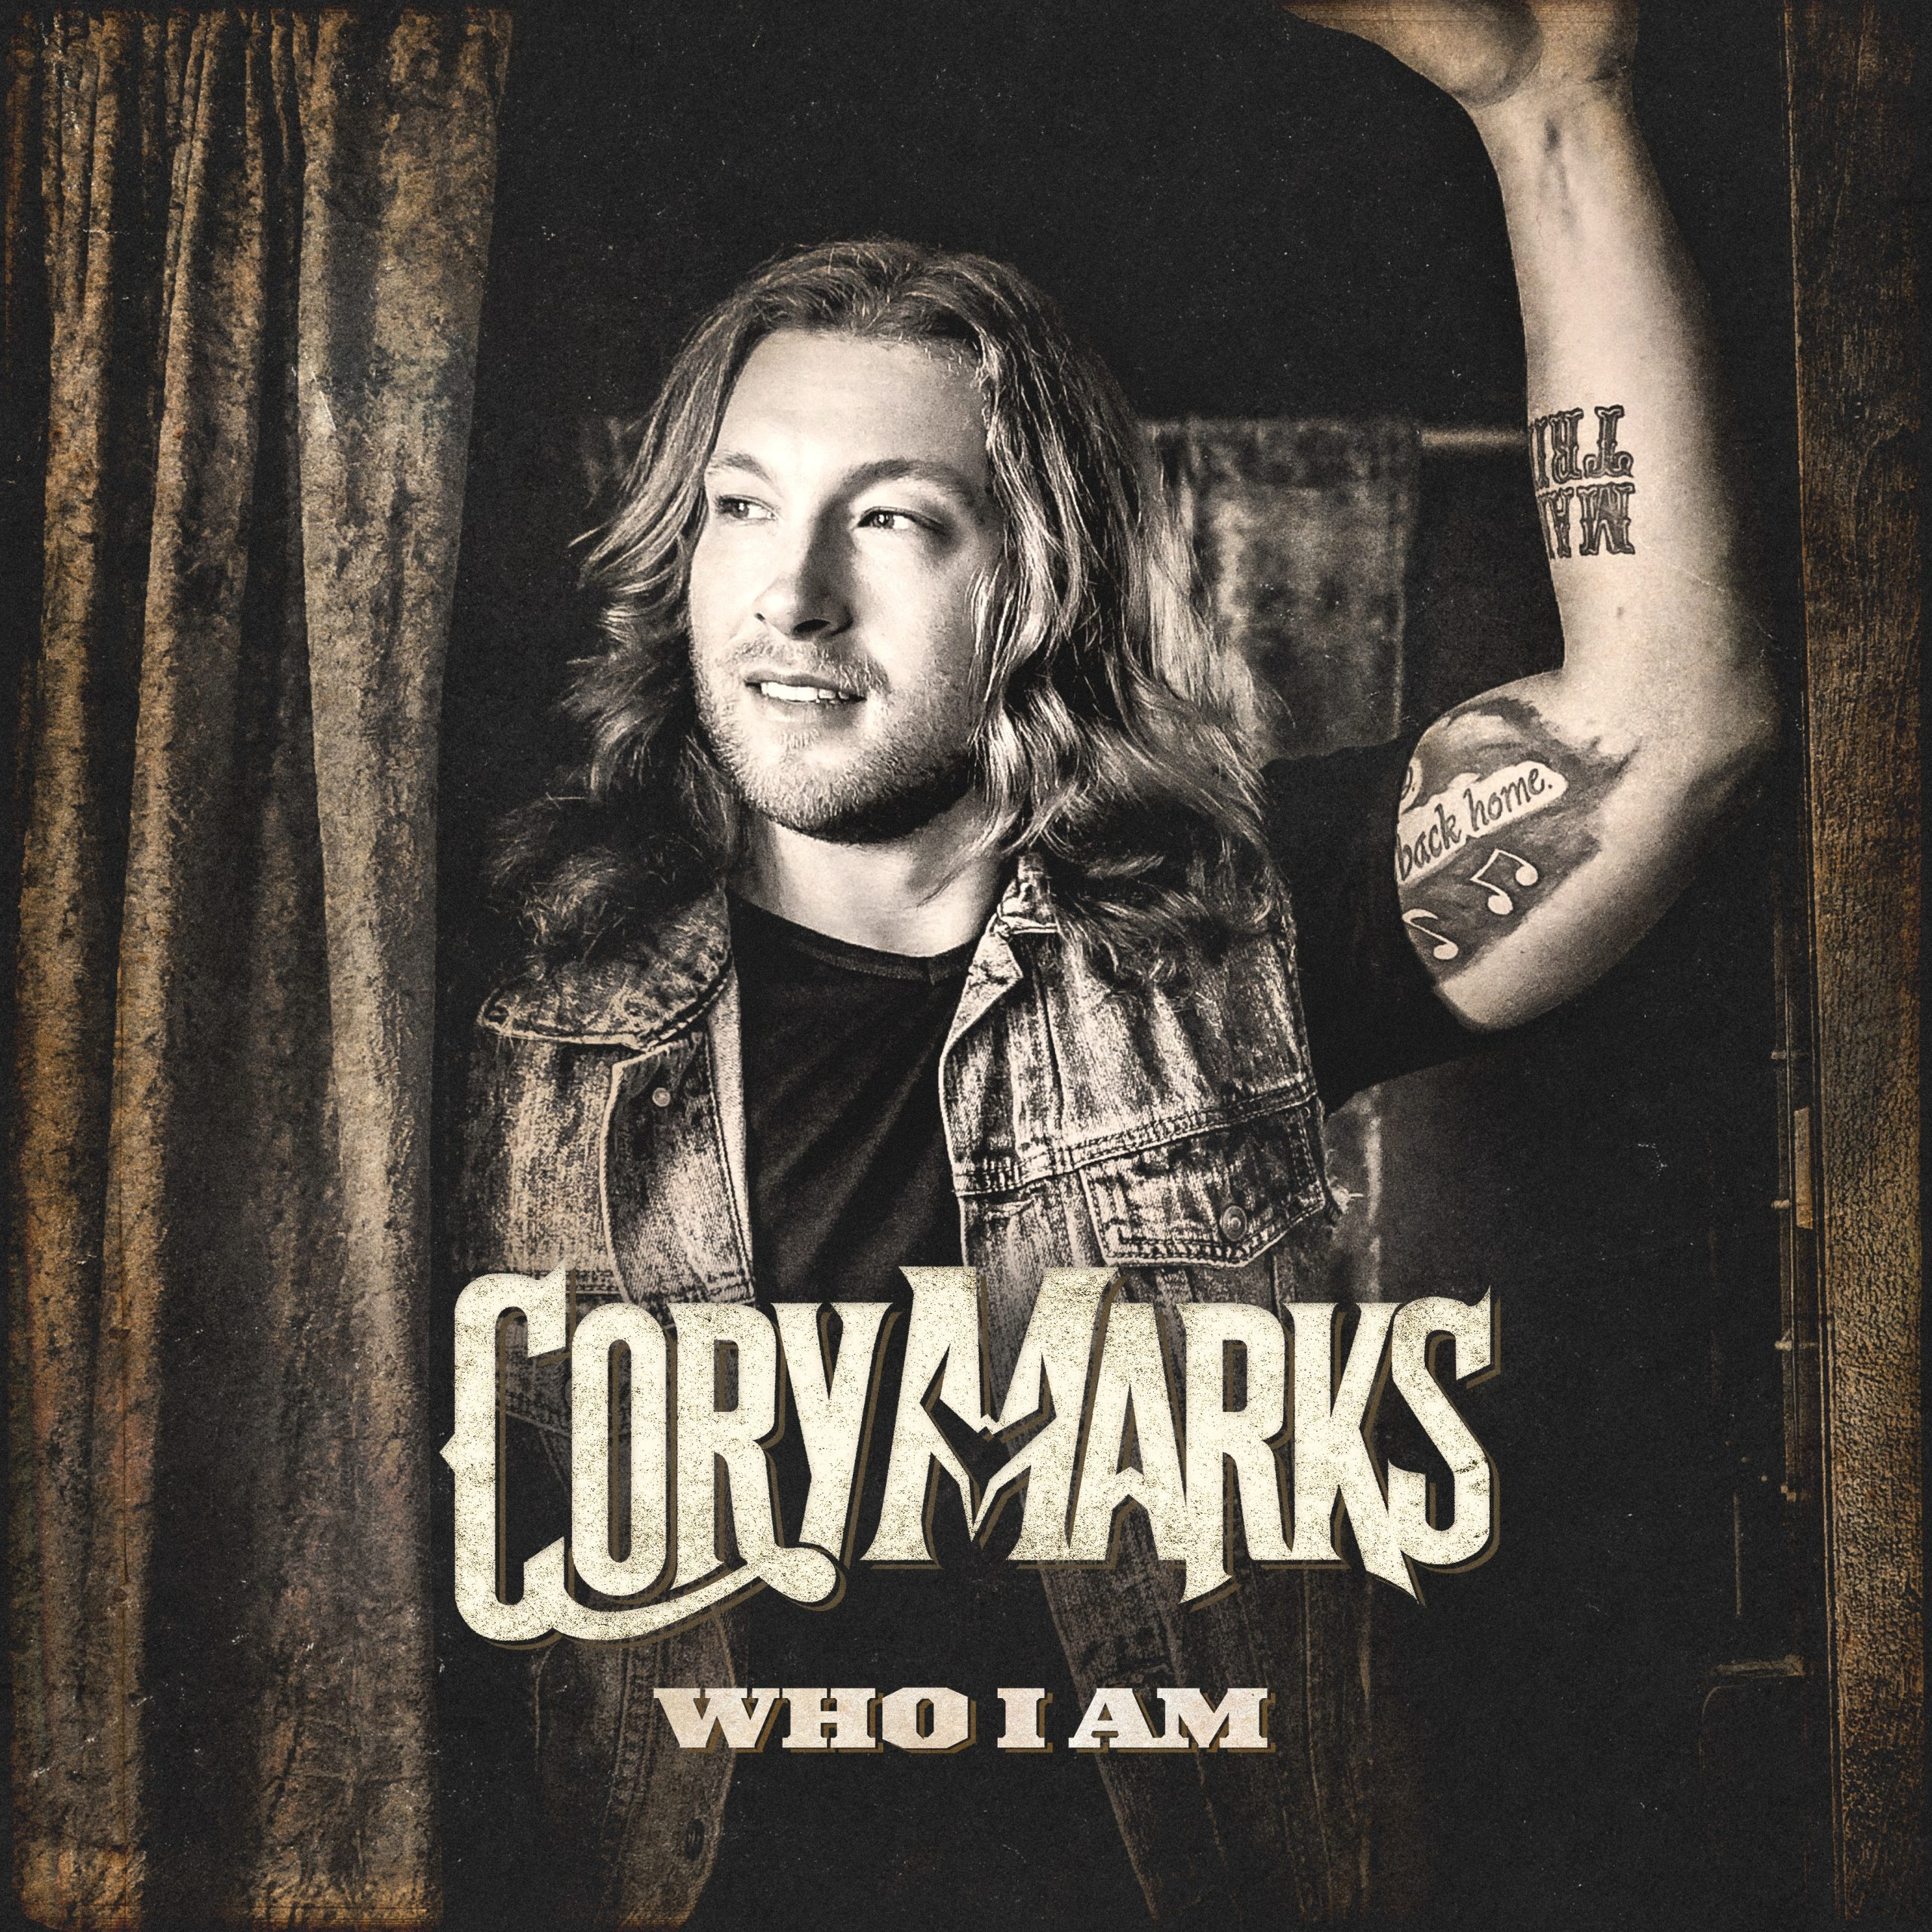 CoryMarks_WhoIam_Cover_12x12_3600x3600_300_RGB_DELIVERABLE